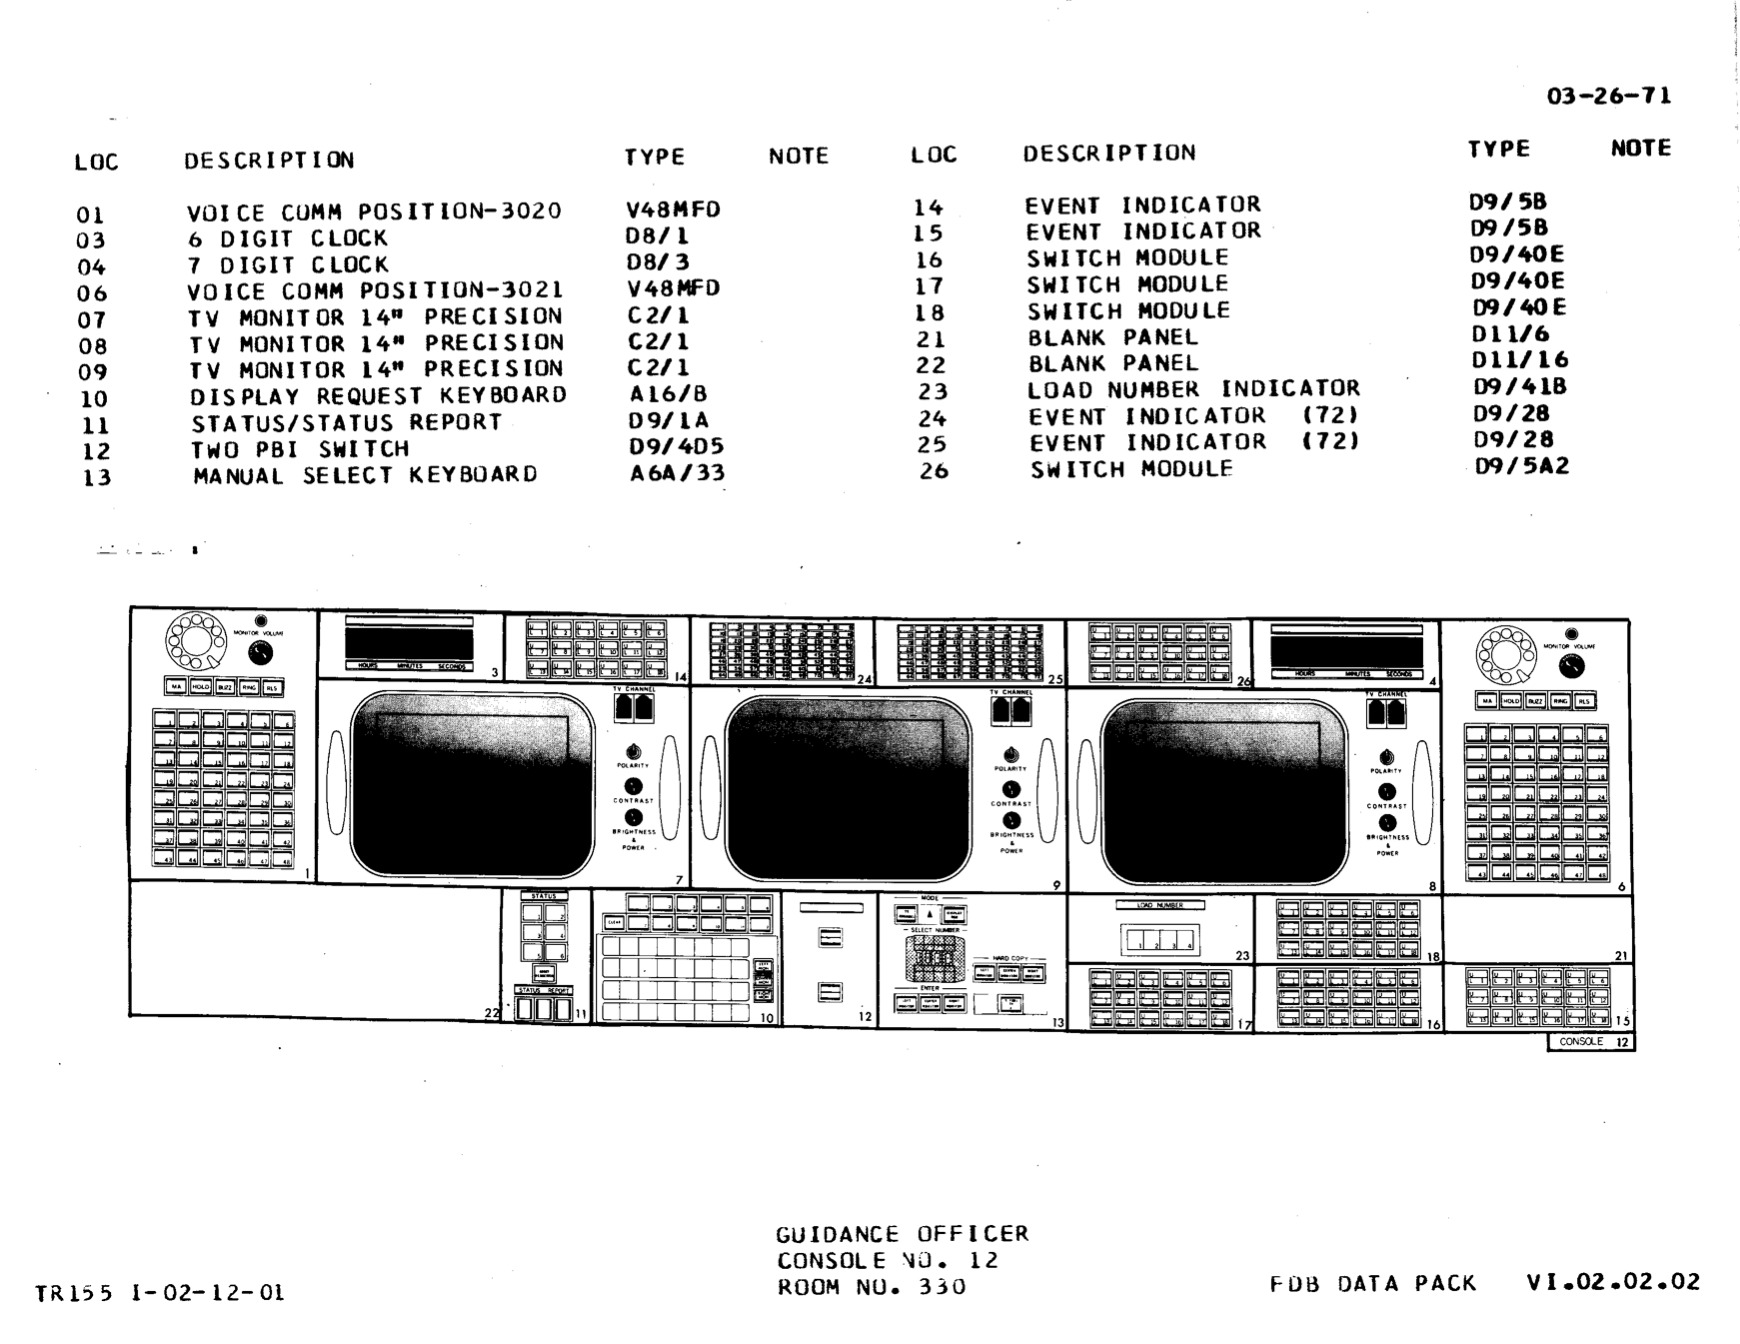 GUIDO console diagram, Apollo configuration